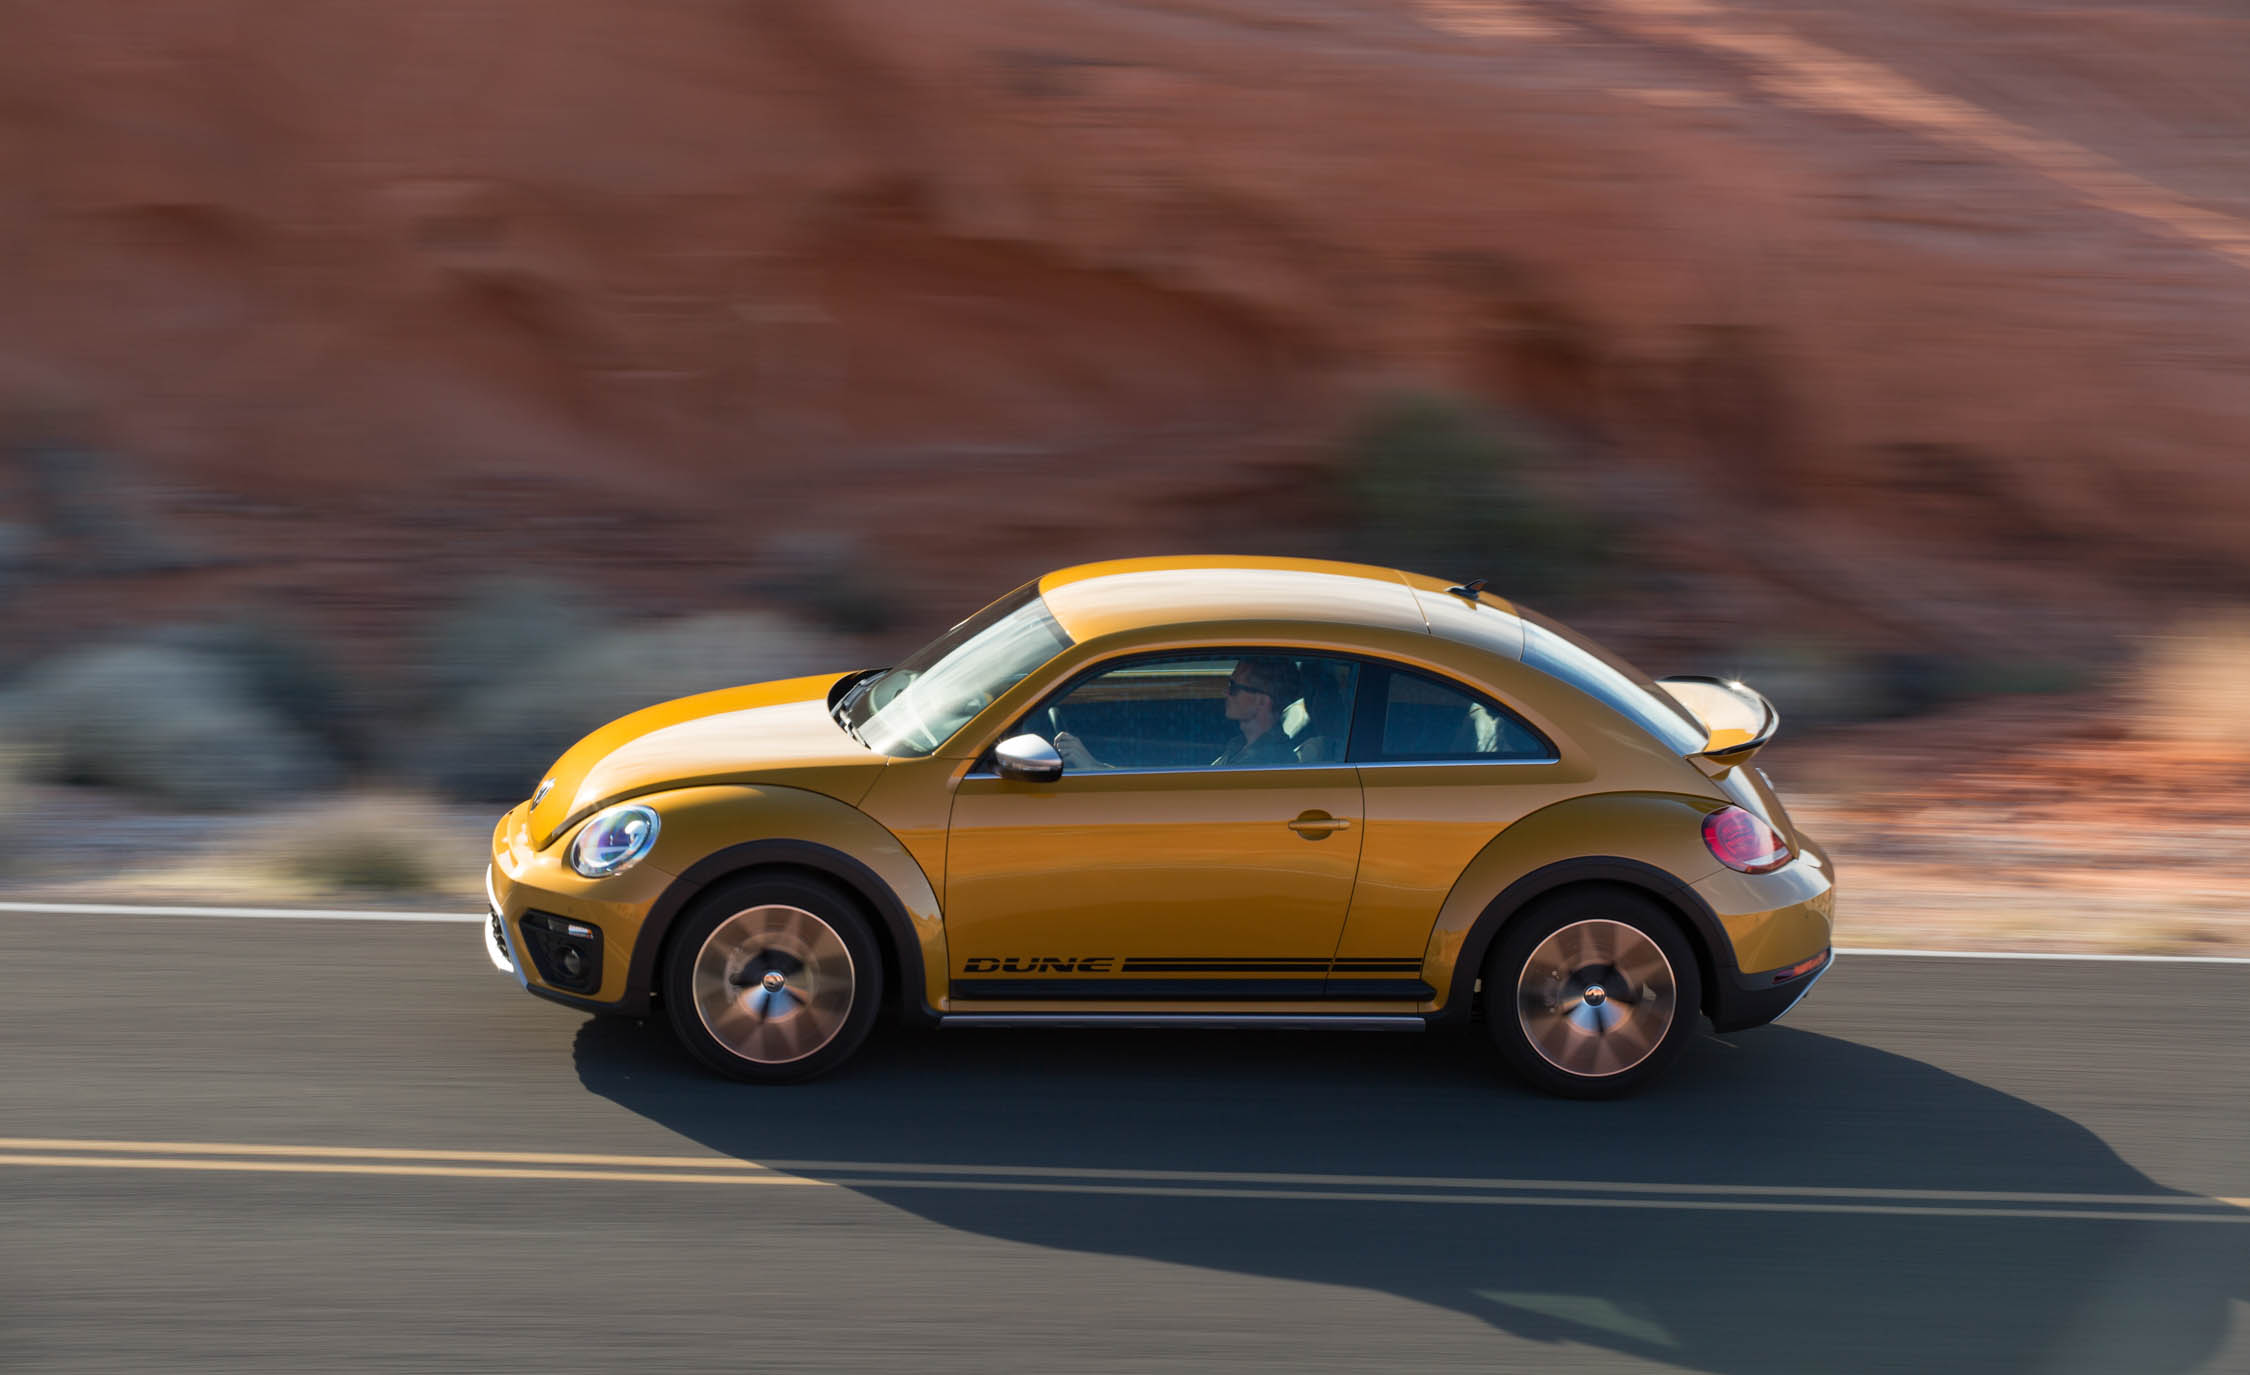 2016 Volkswagen Beetle Dune Test Side View (Photo 32 of 32)